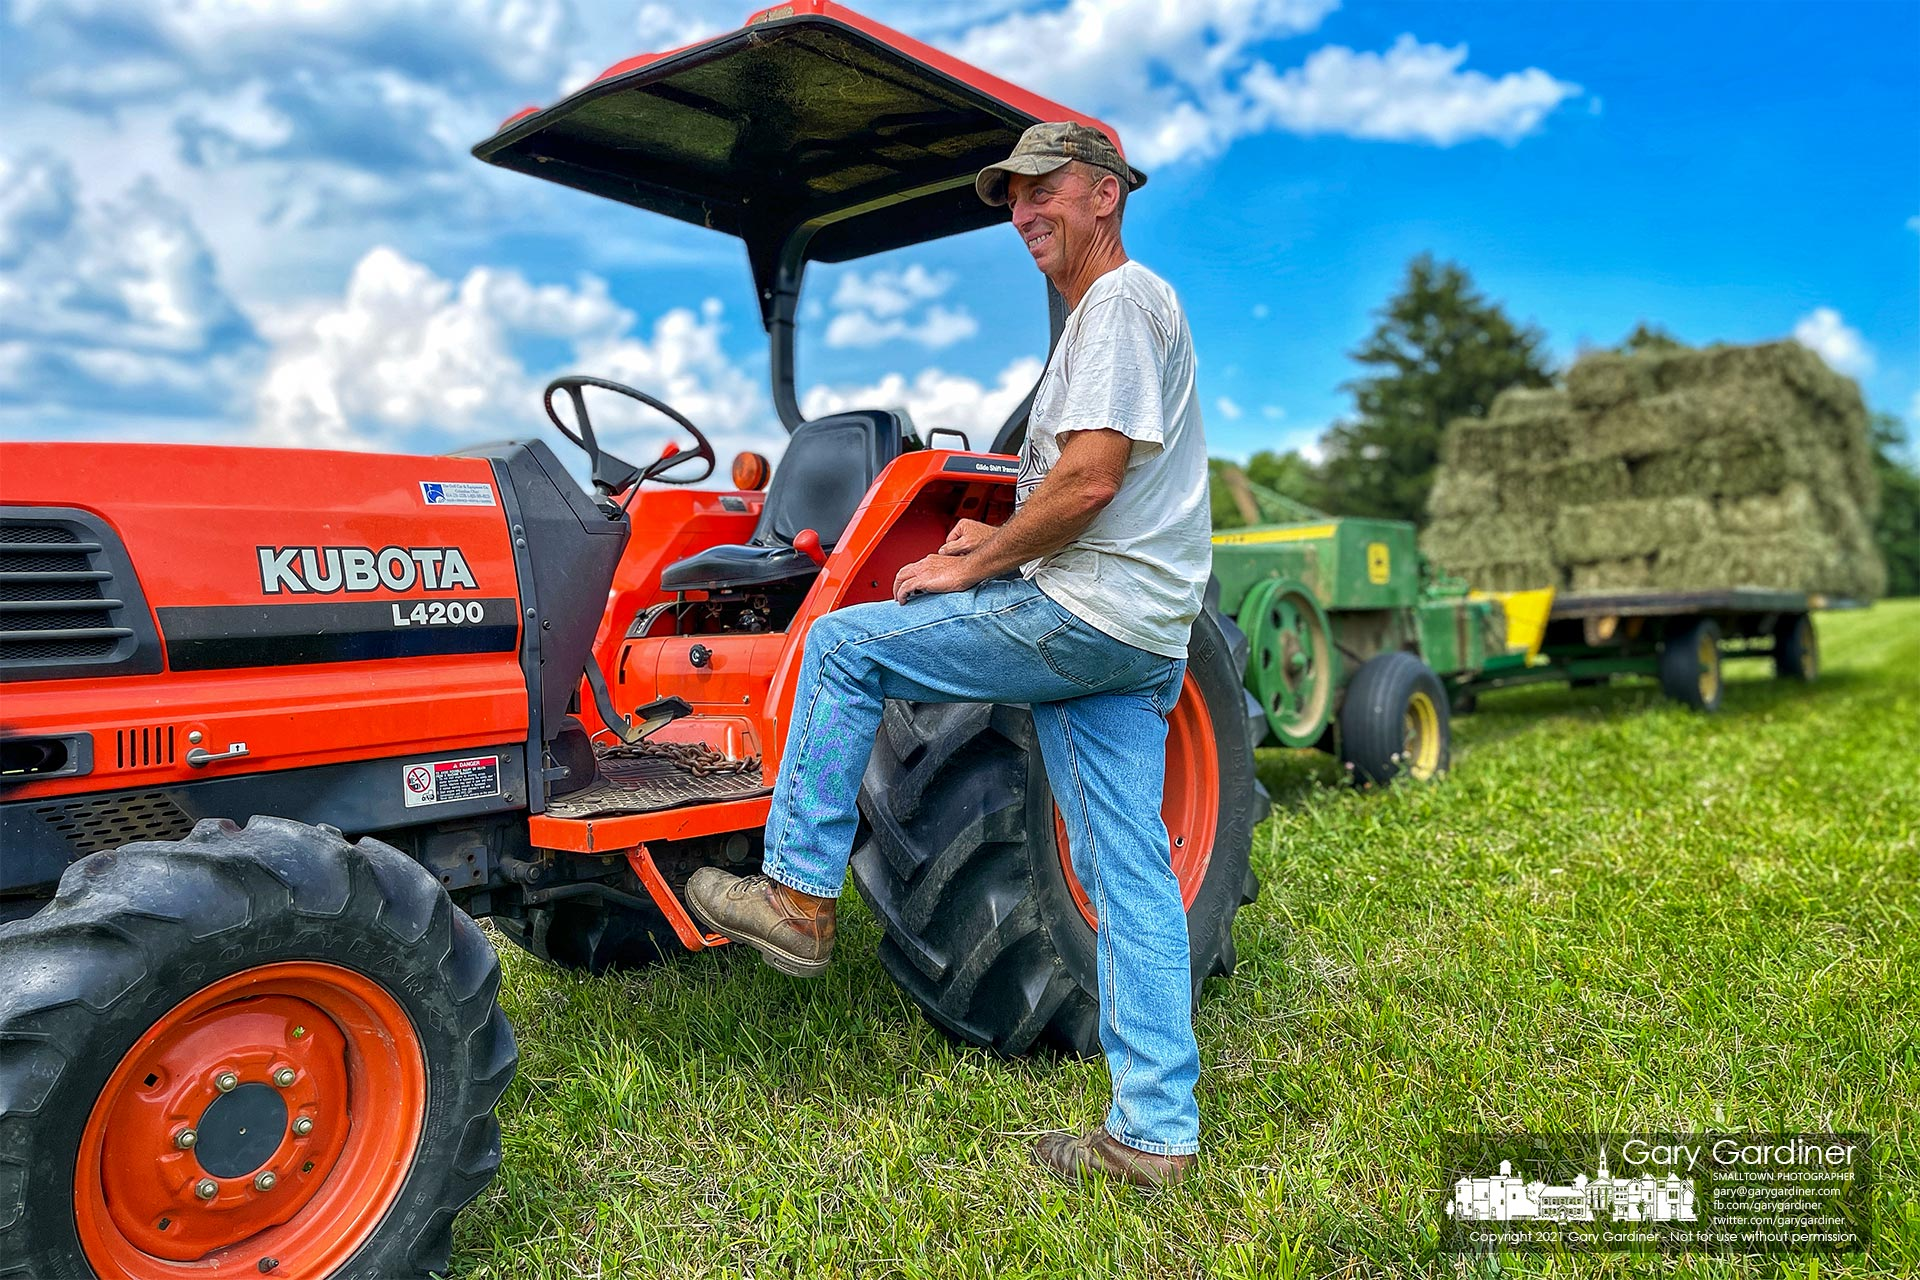 Duane Yarnell pauses before completing baling hay in the field along the edge of his farmland on County Line Road. My Final Photo for July 7, 2021.